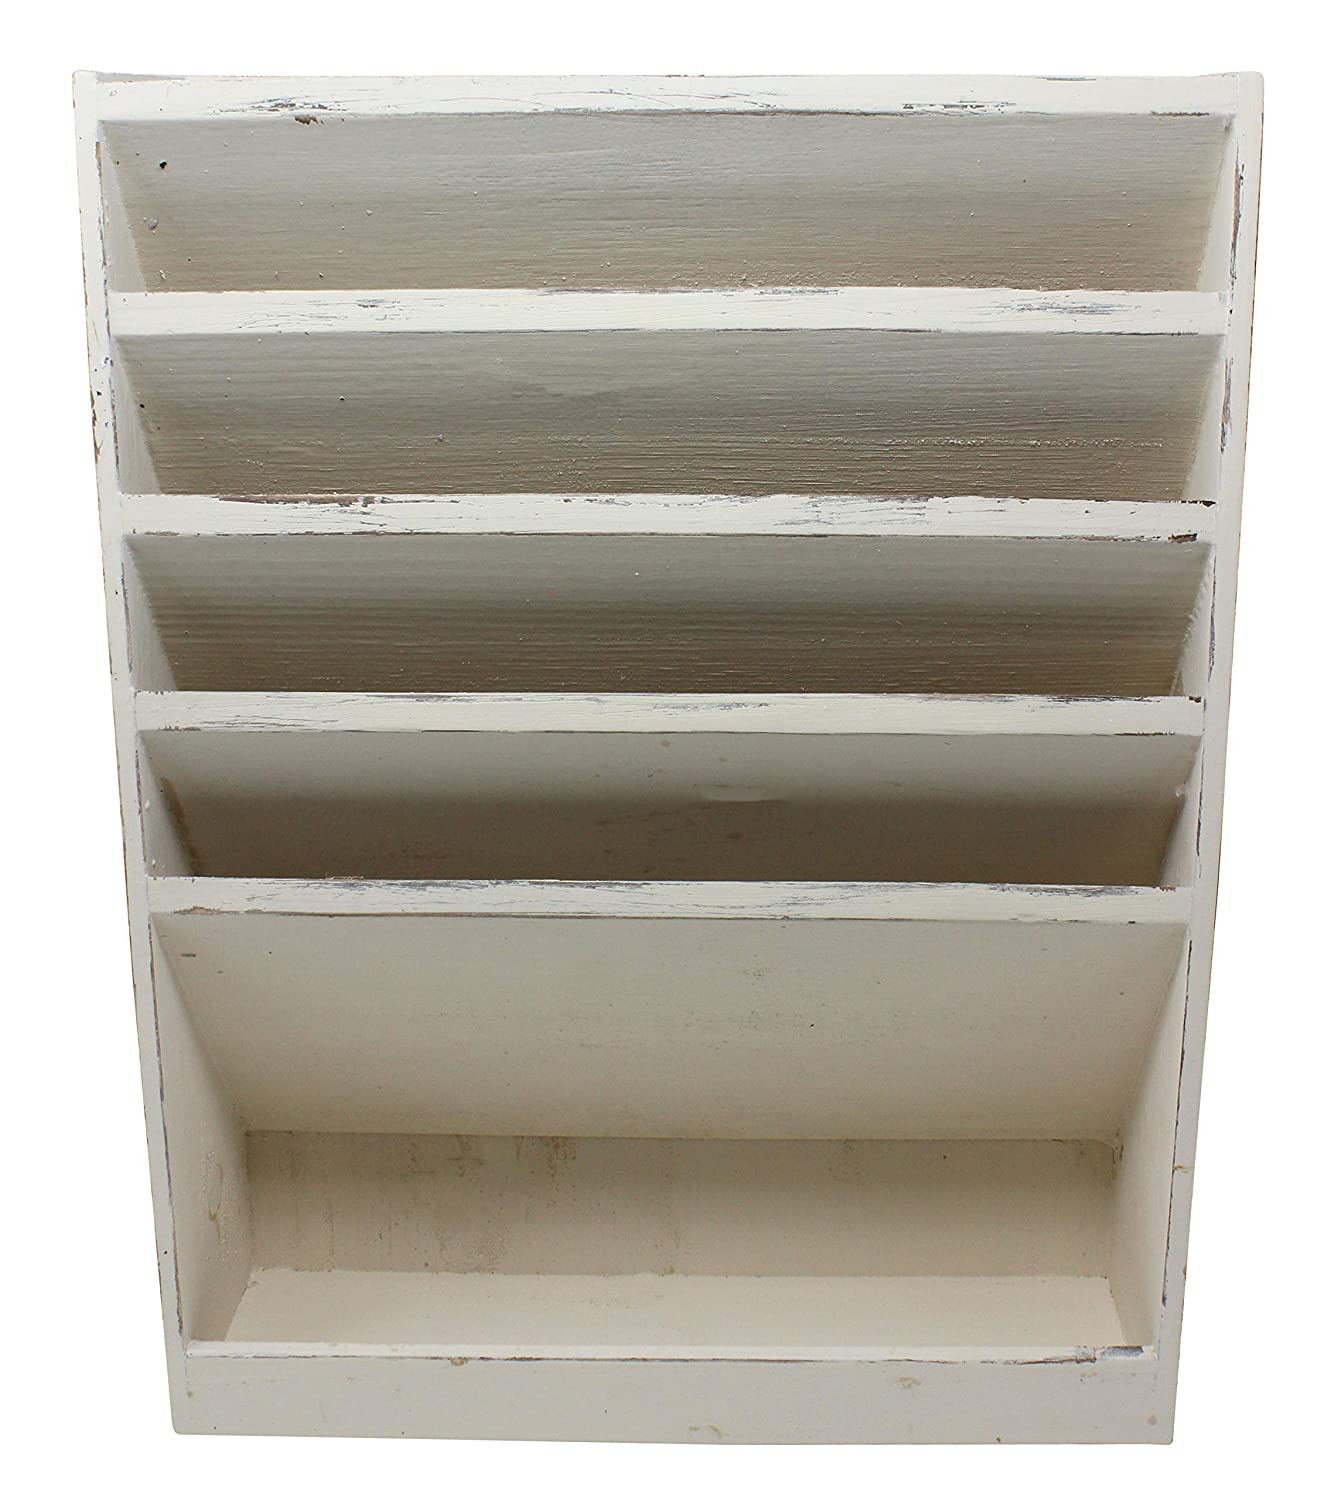 Wall mounted office desk Full Length Wall Vintage Rustic White Washed Wooden Slot Office Desk Or Wall Mounted Hanging File Document Organizer Mail Rack Tray Distressed Torched Wood Finish Amazoncom Amazoncom Vintage Rustic White Washed Wooden Slot Office Desk